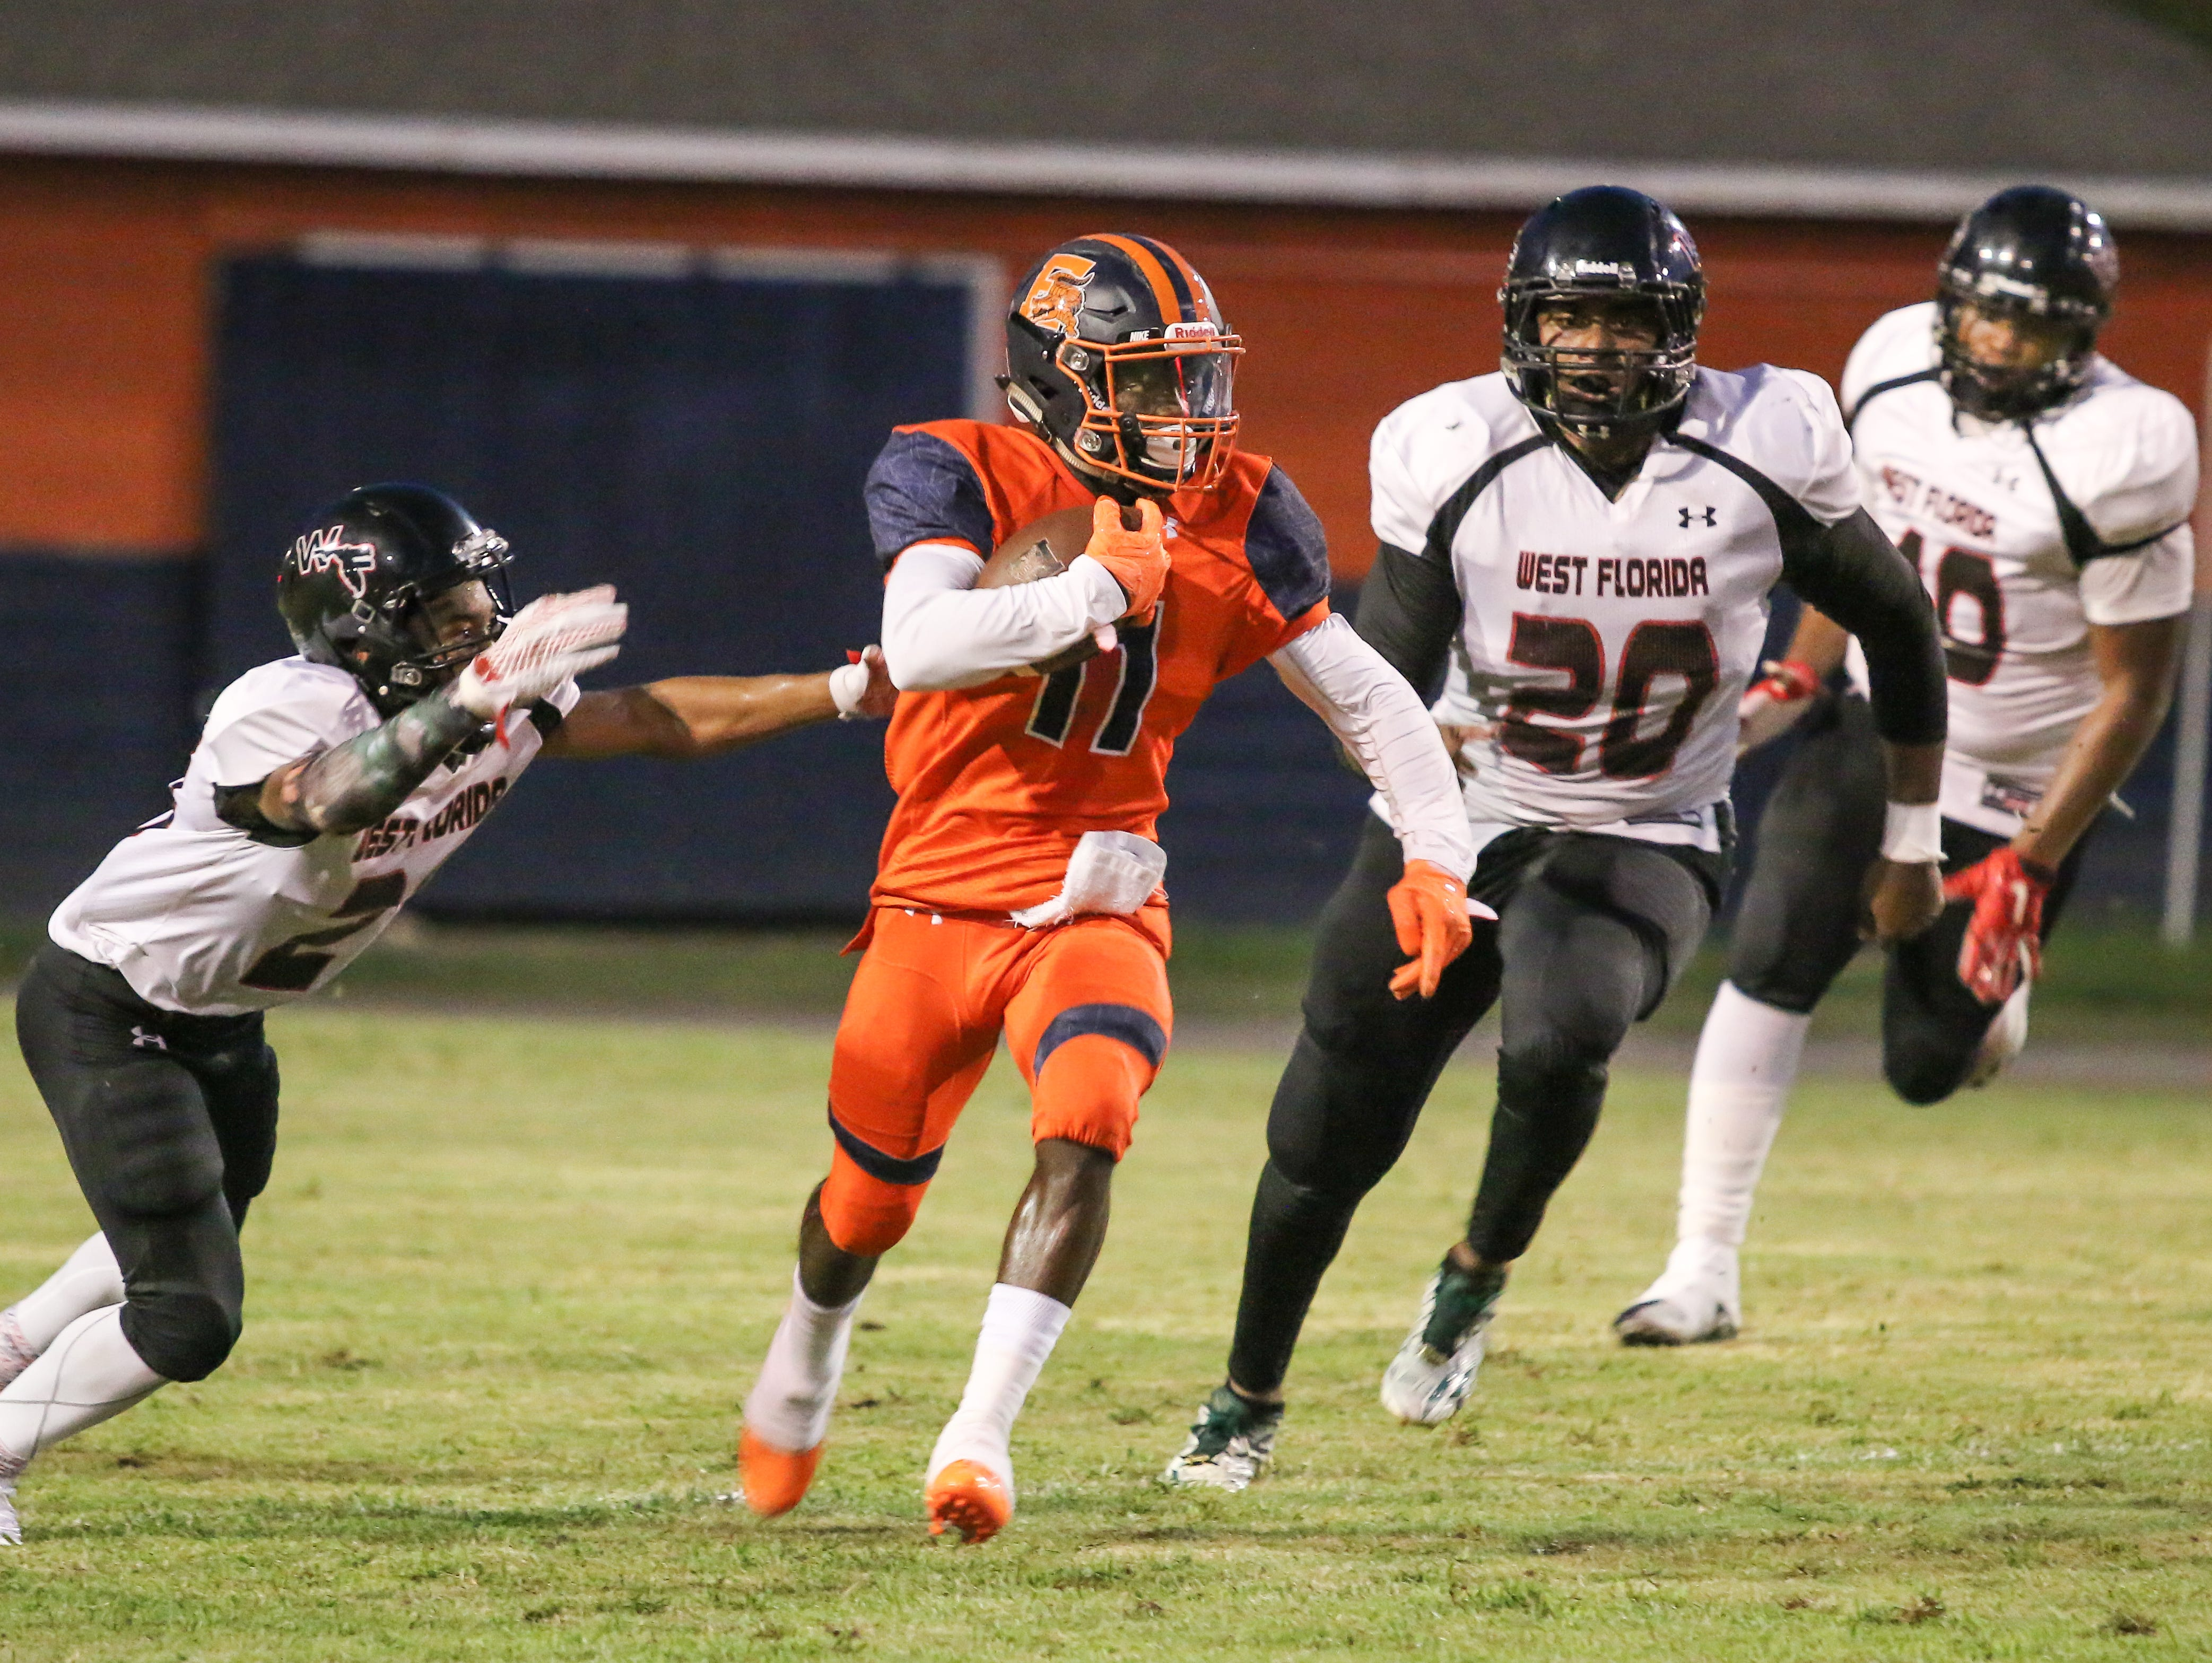 Escambia's Martin McGhee (11) races past the West Florida defenders Thursday night at Escambia High School's Emmitt Smith Field.